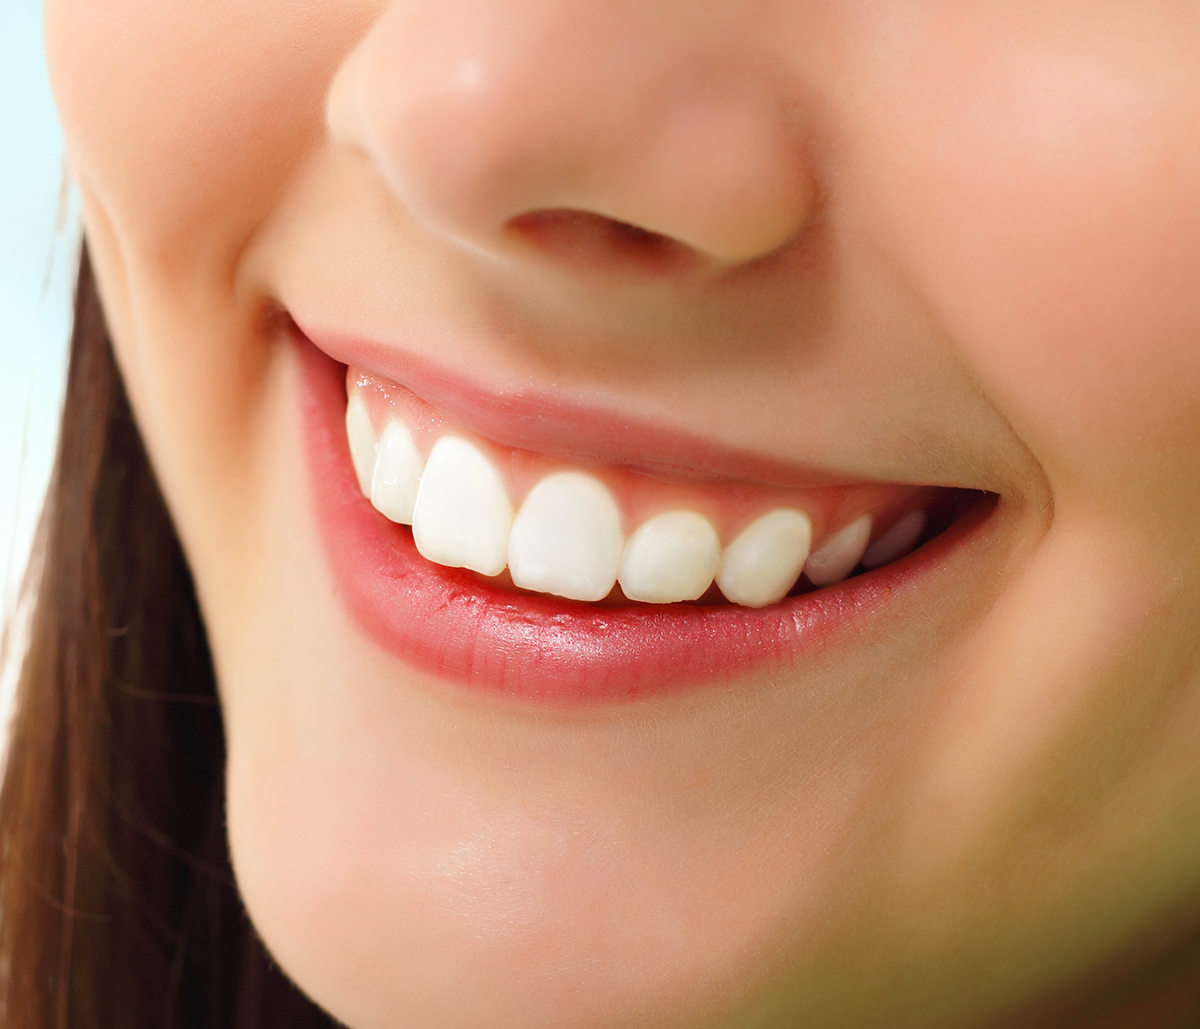 Reasons to Come in for a Dental Veneers Procedure in Pembroke Pines, FL Area